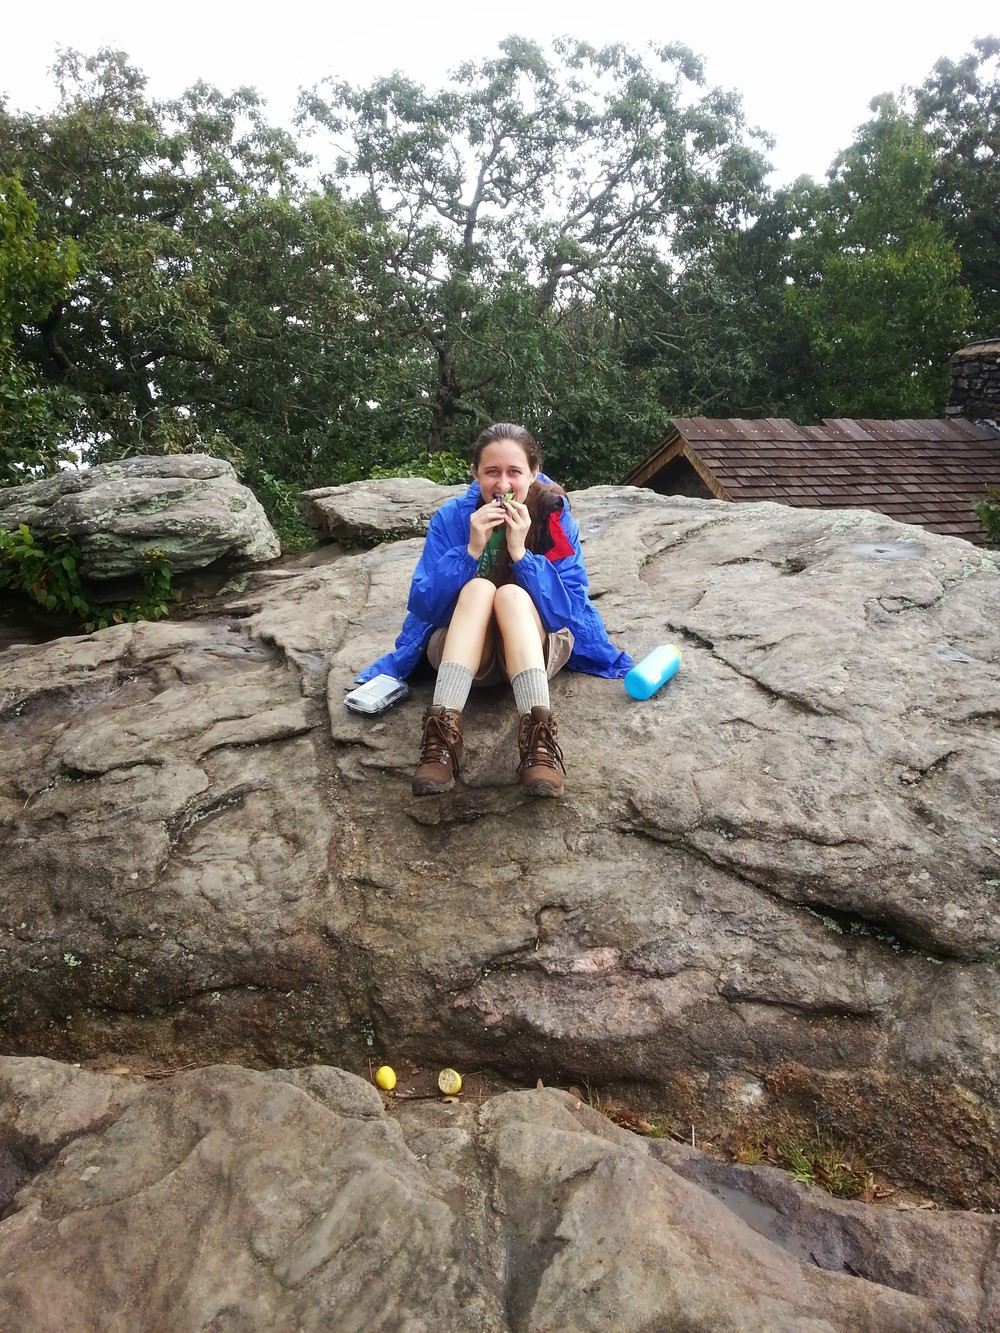 Windbreaker, Clif bars, and shivering on the rock ledge on Blood Mountain.